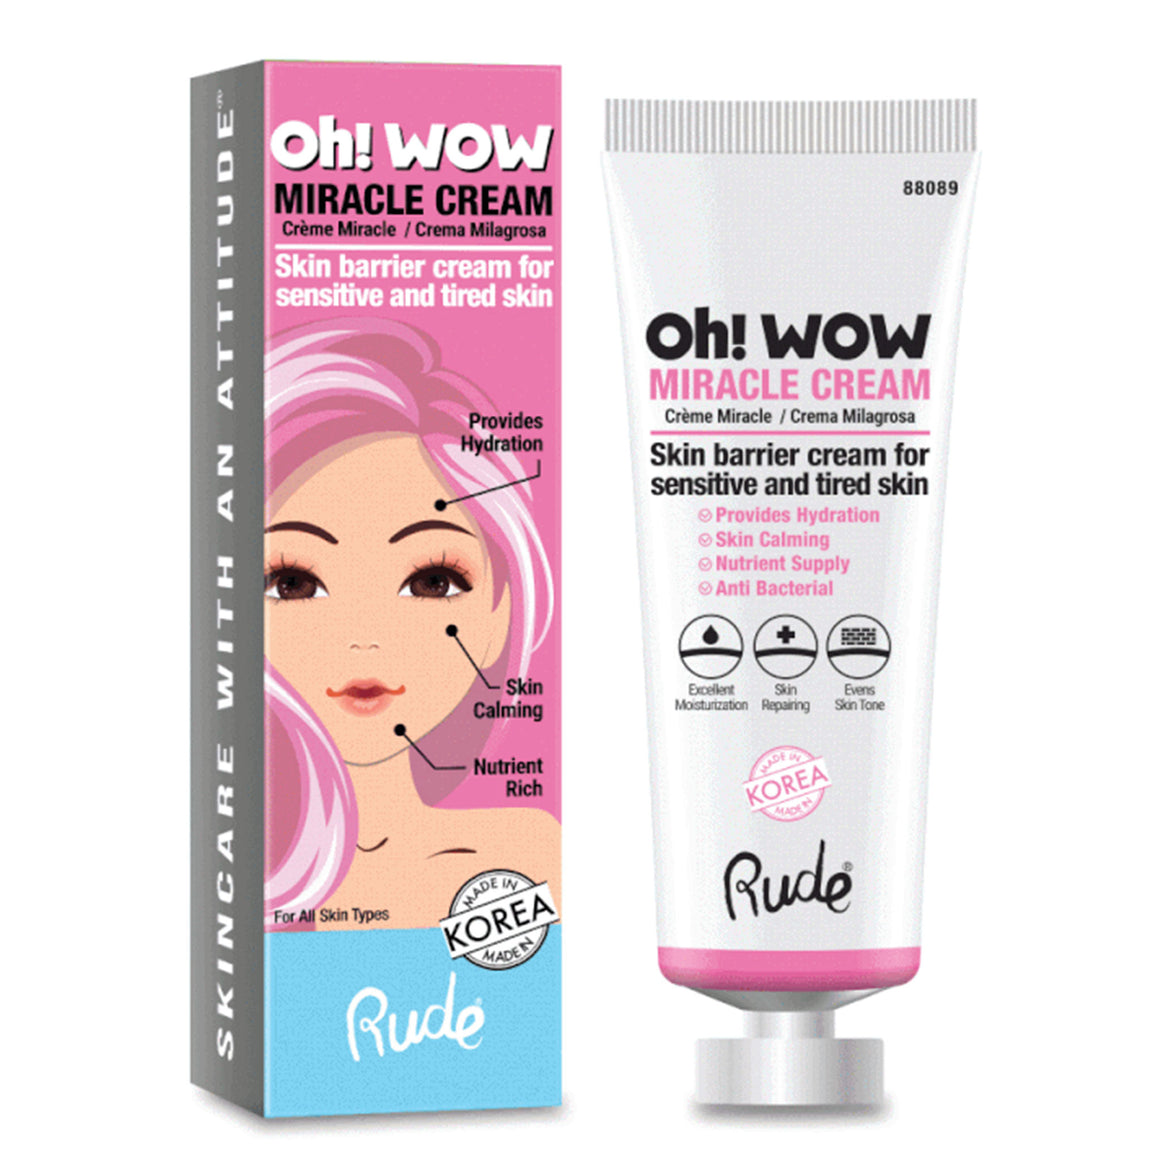 RUDE - Oh! Wow Miracle Cream